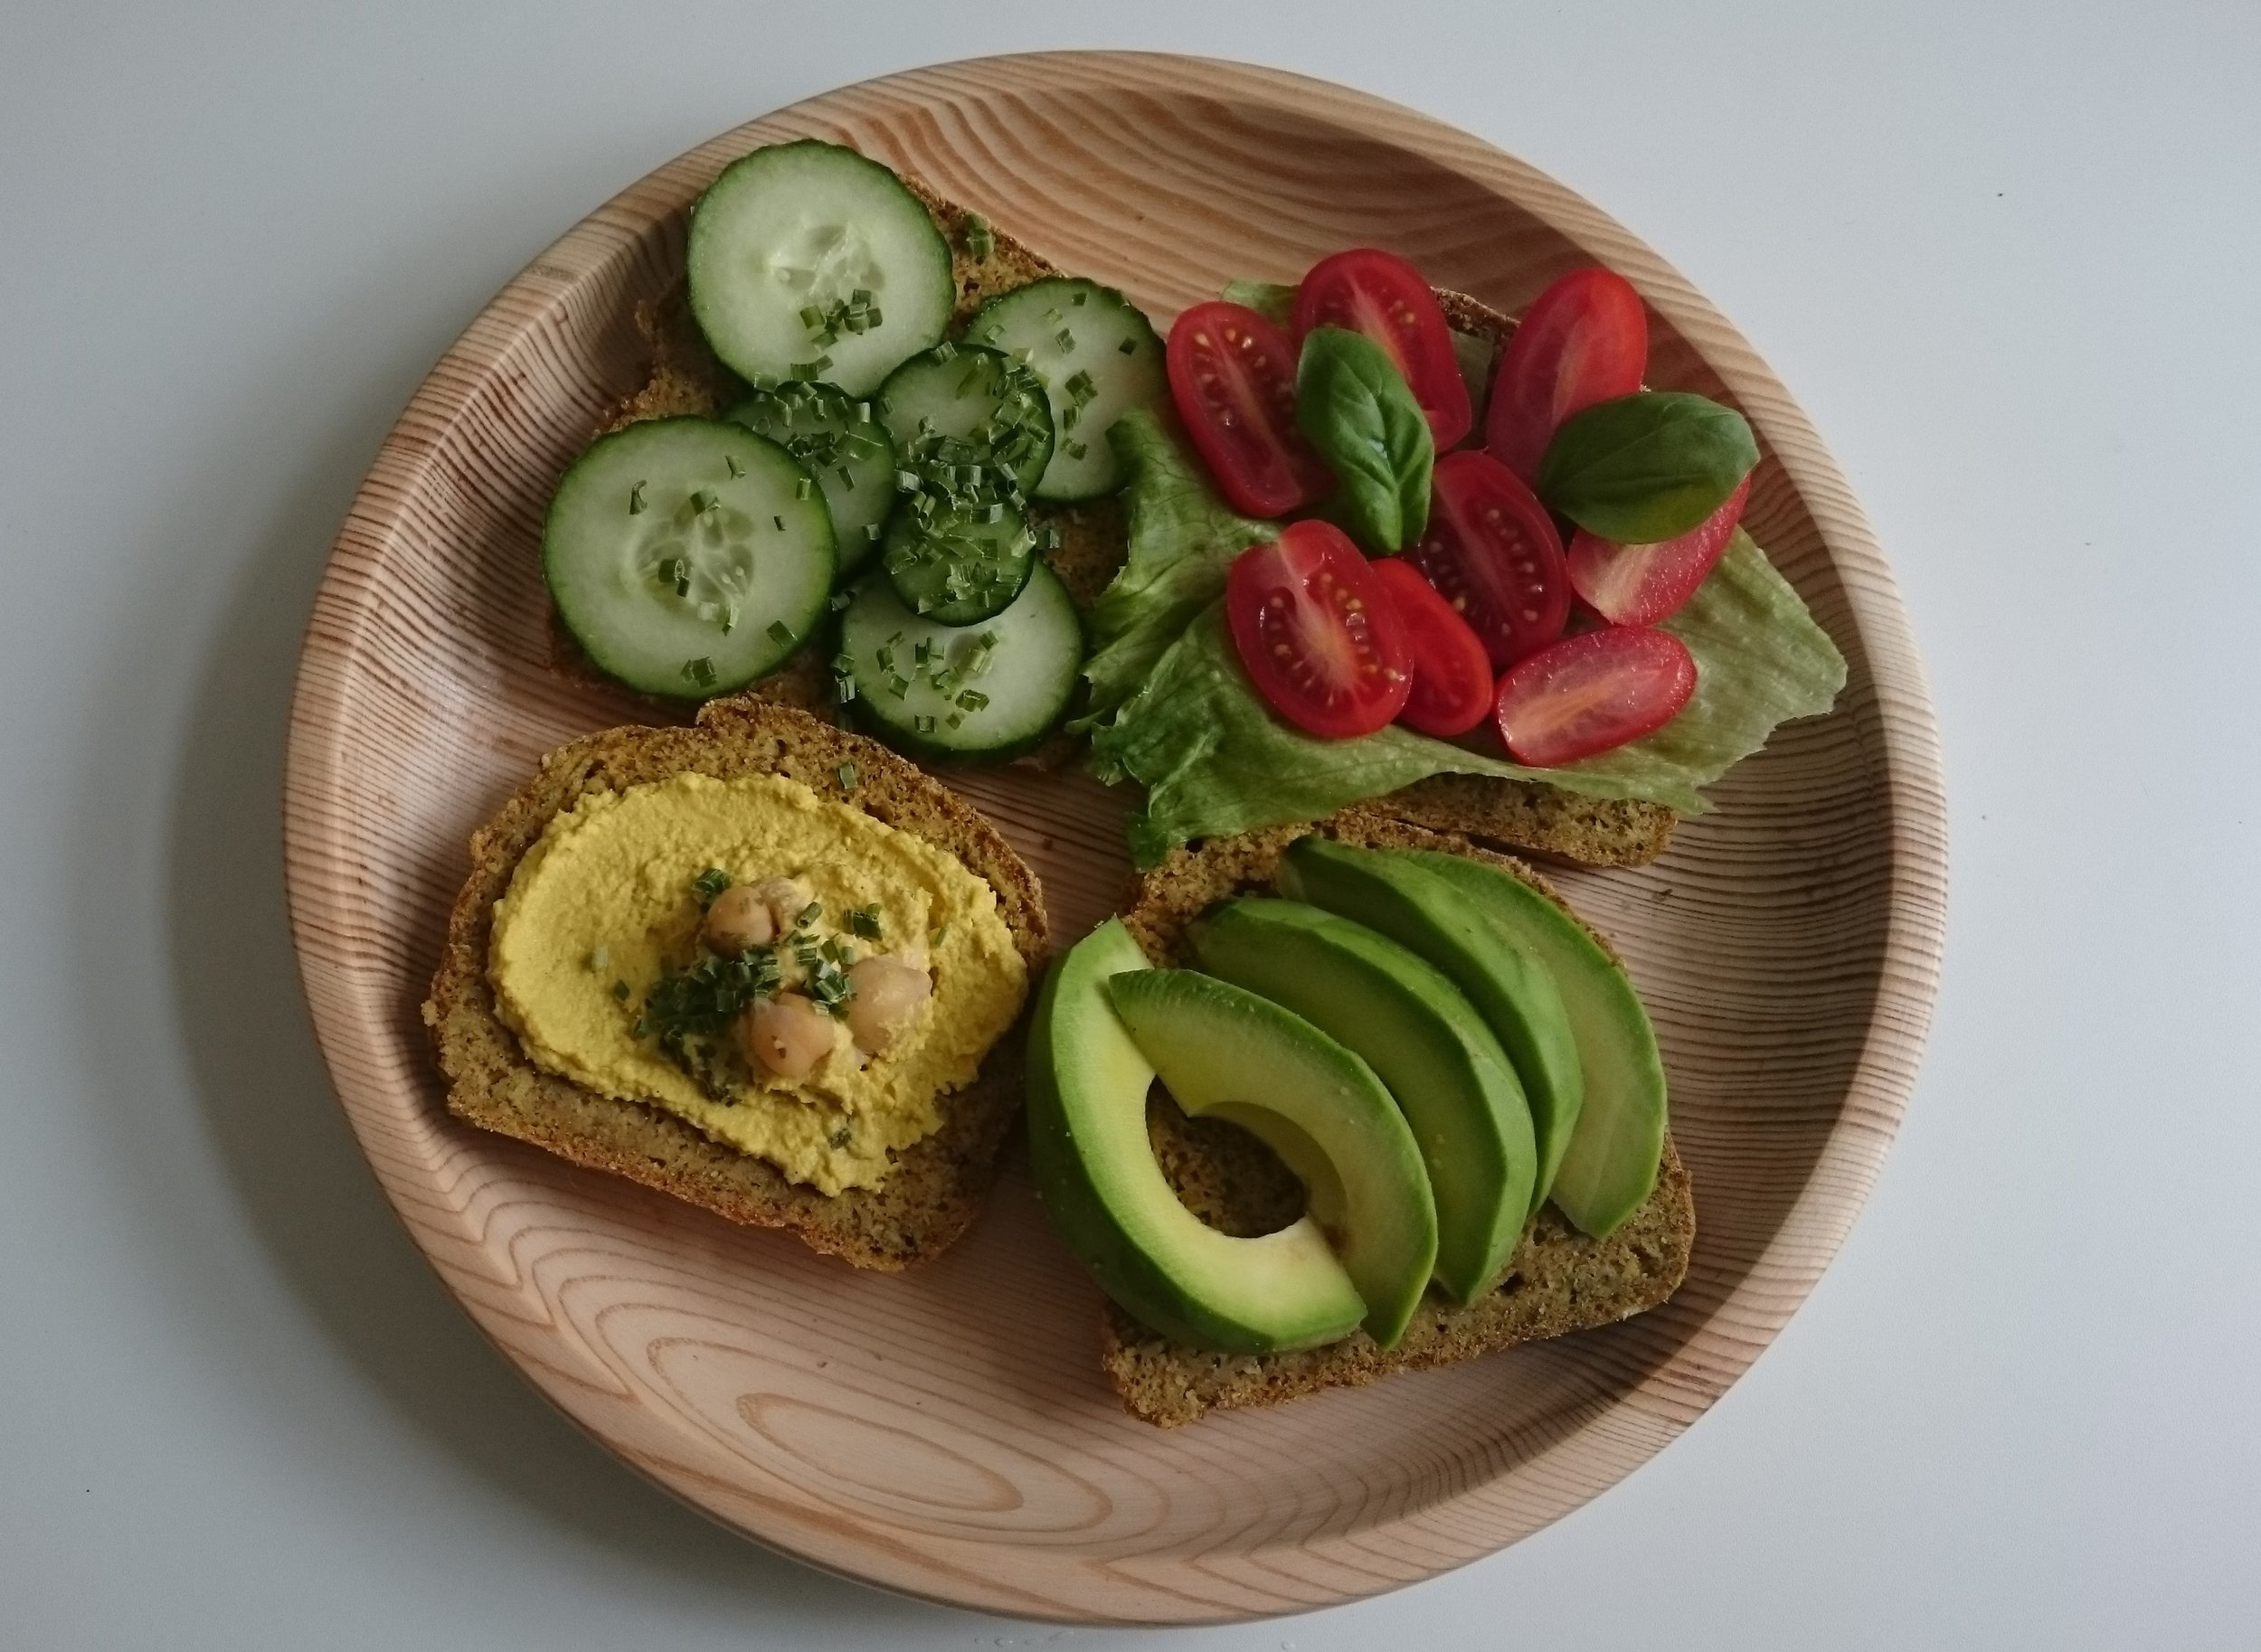 Goes really well with curry hummus, avocado and your summery veggies!